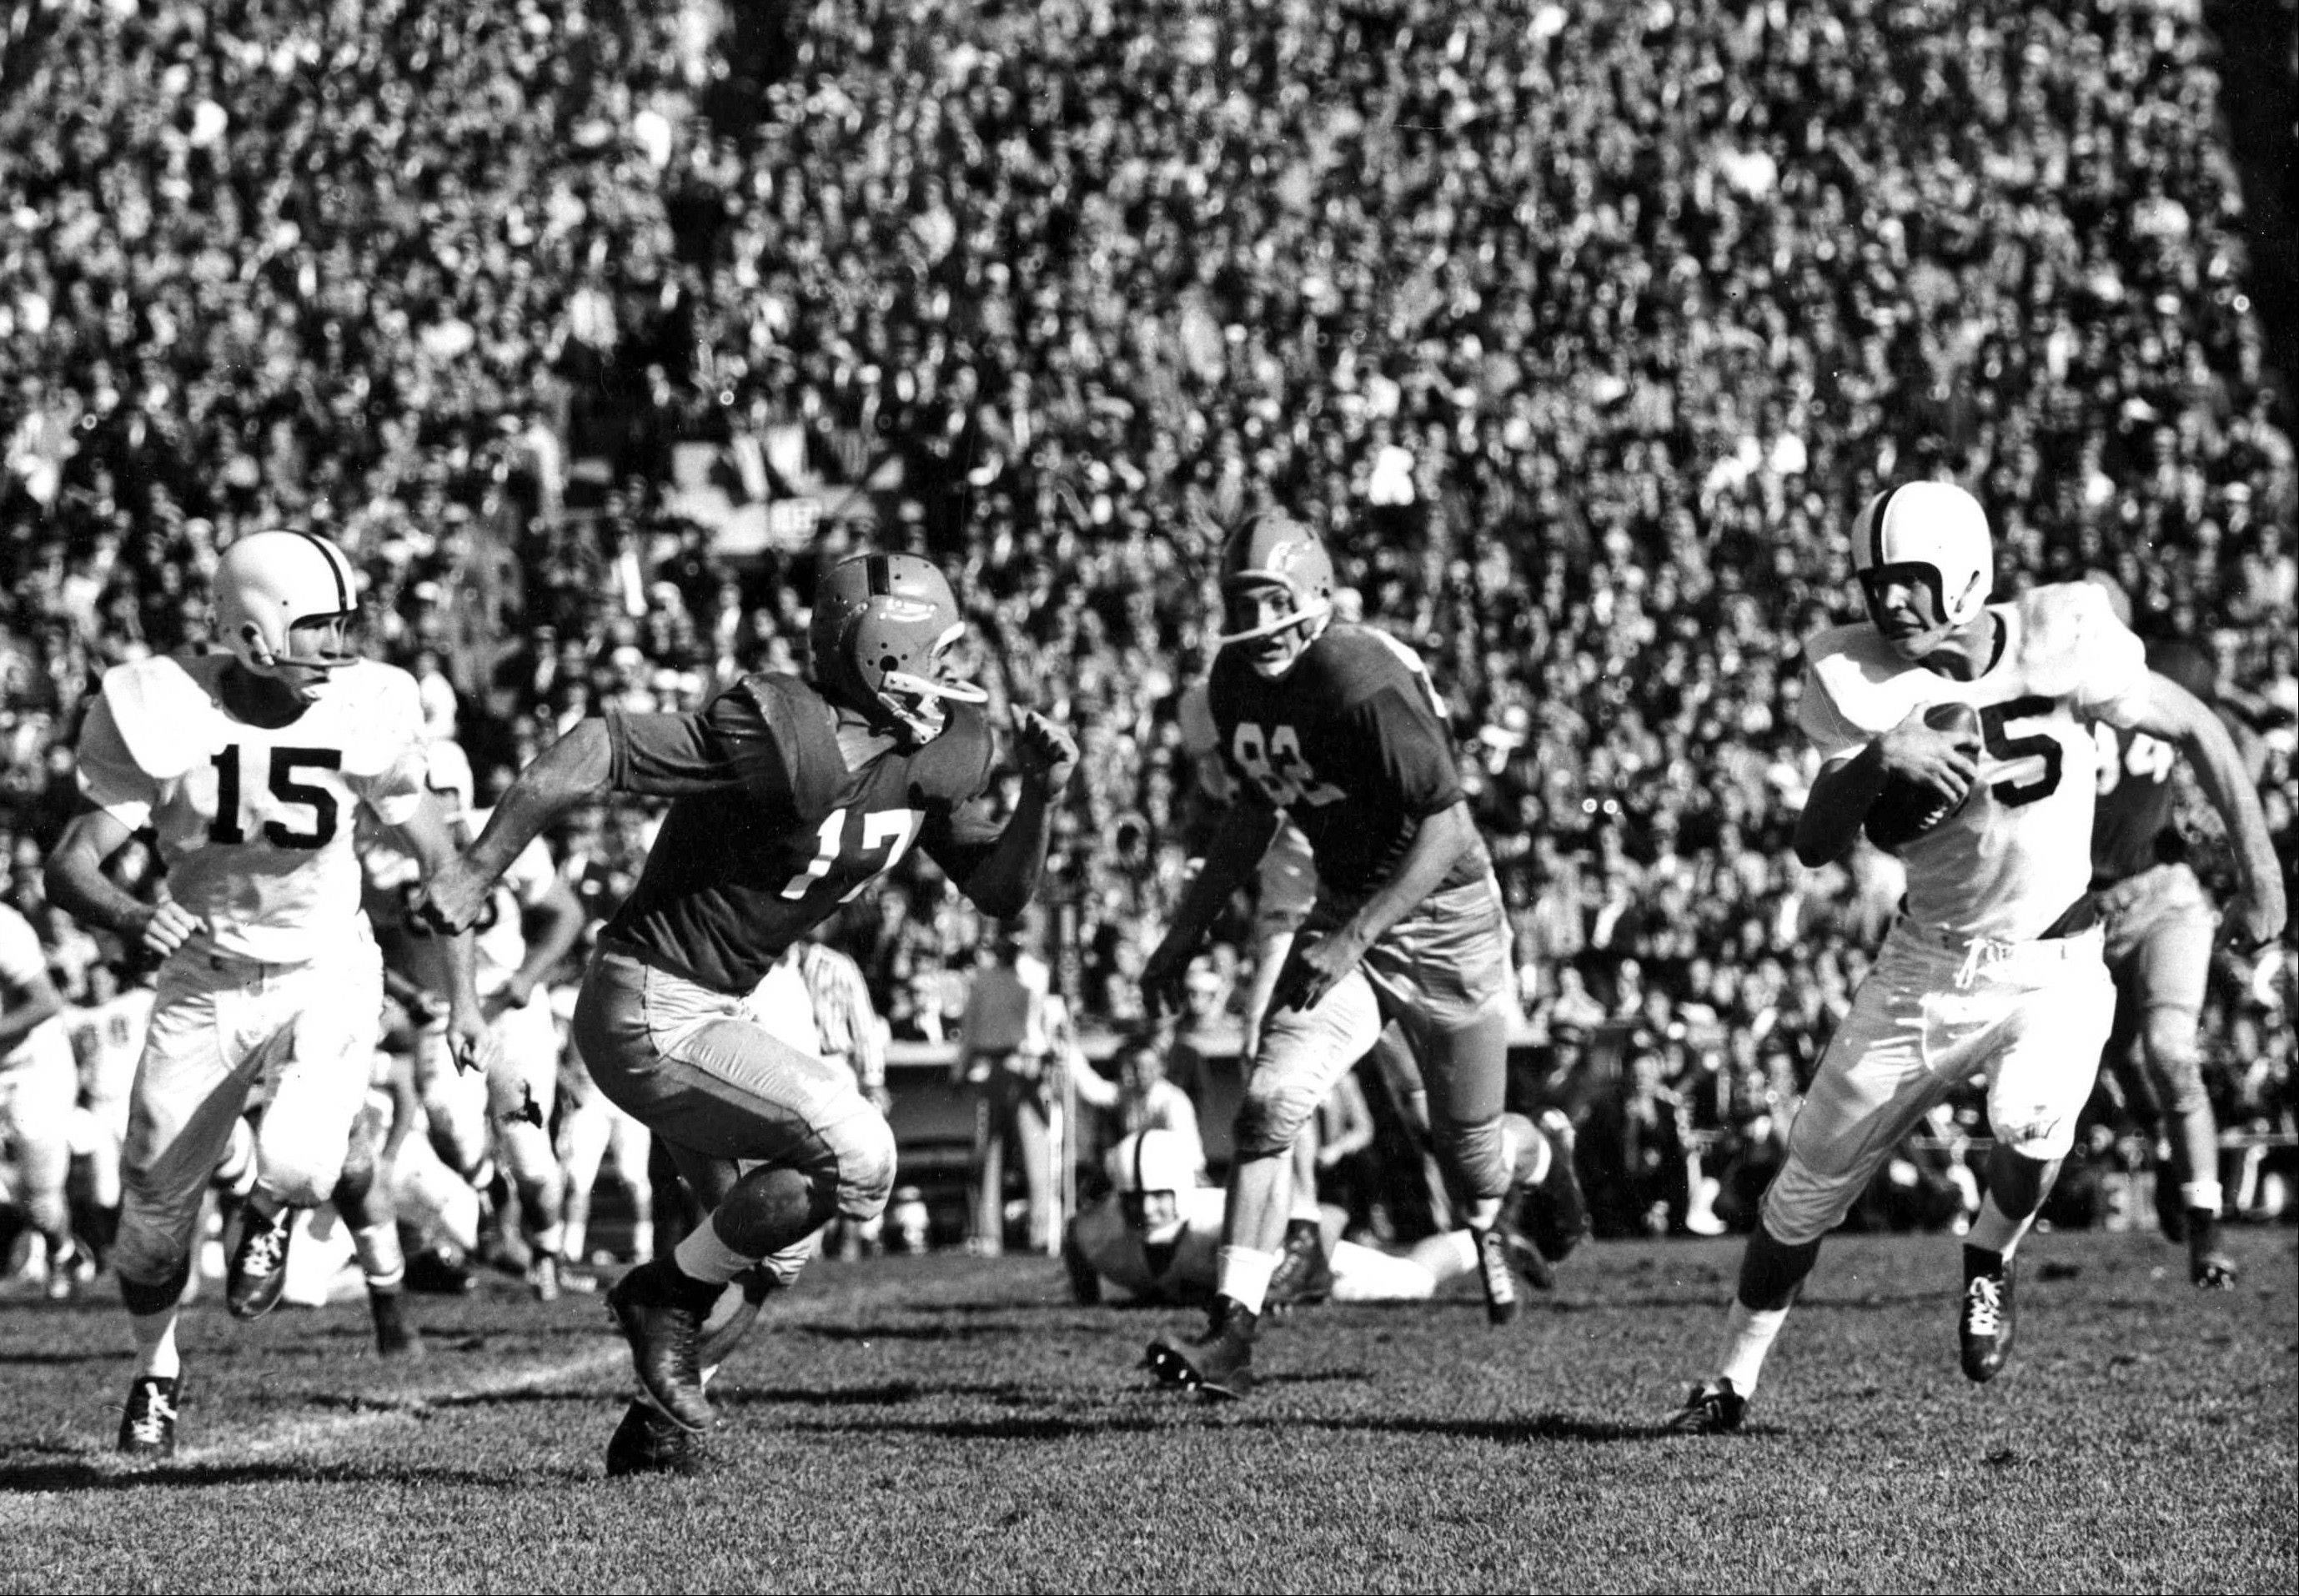 Oklahoma's Clendon Thomas, right returns an interception as Notre Dame's Jim Morse chases during a game in South Bend, Ind. Notre Dame has had some great victories in its 125 years of playing college football, yet none was as improbable as the 7-0 victory at second-ranked Oklahoma in 1957. That victory ended the Sooners' NCAA-record winning streak at 47 games and came just a season after the Sooners beat the Irish 40-0 in South Bend, still the most lopsided home loss in Notre Dame history.